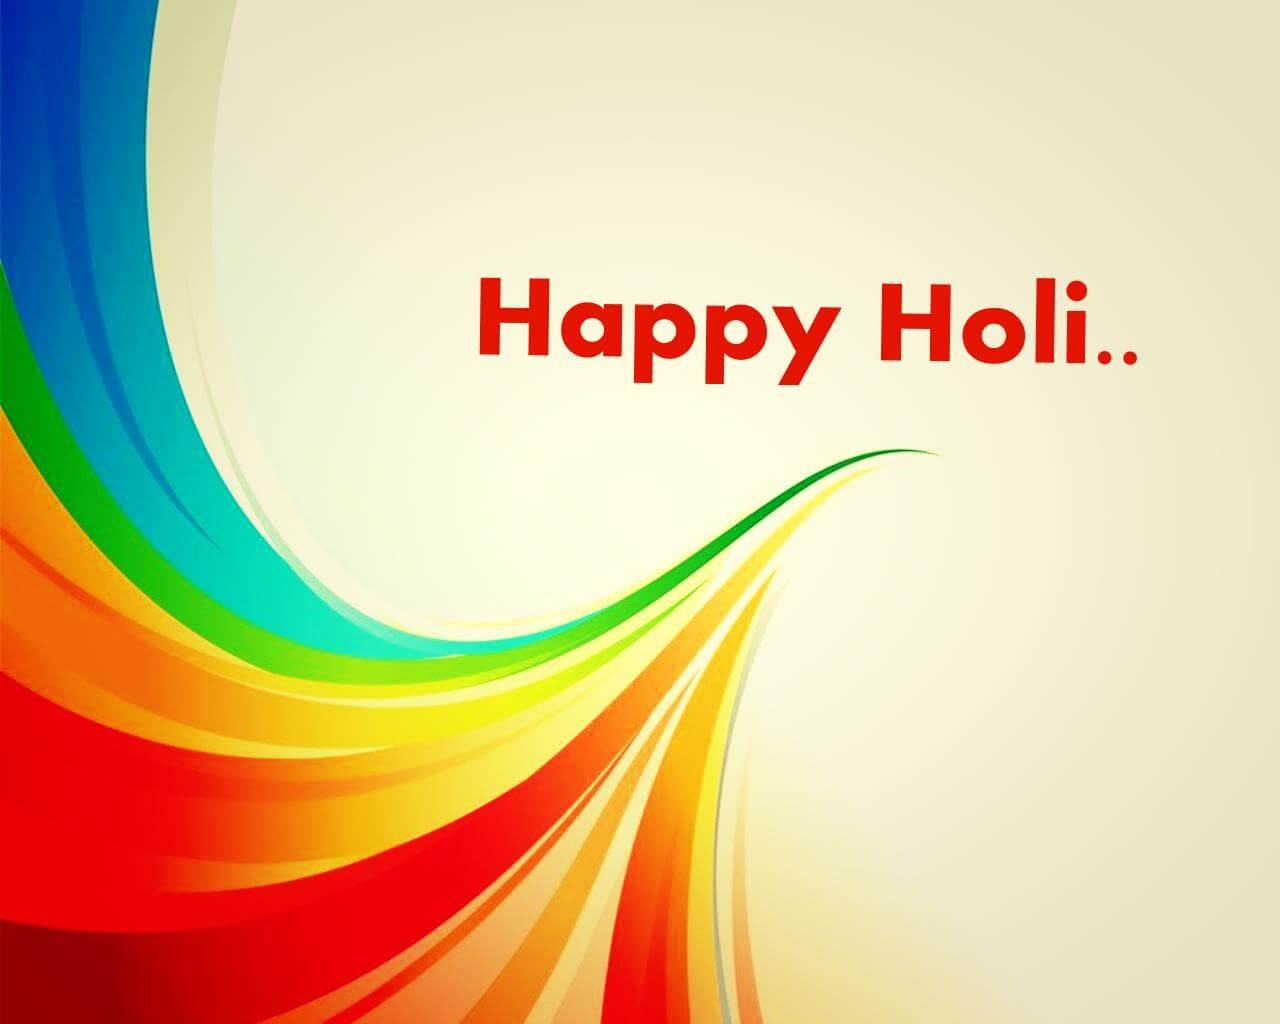 Happy Holi HD Wallpapers Images Download